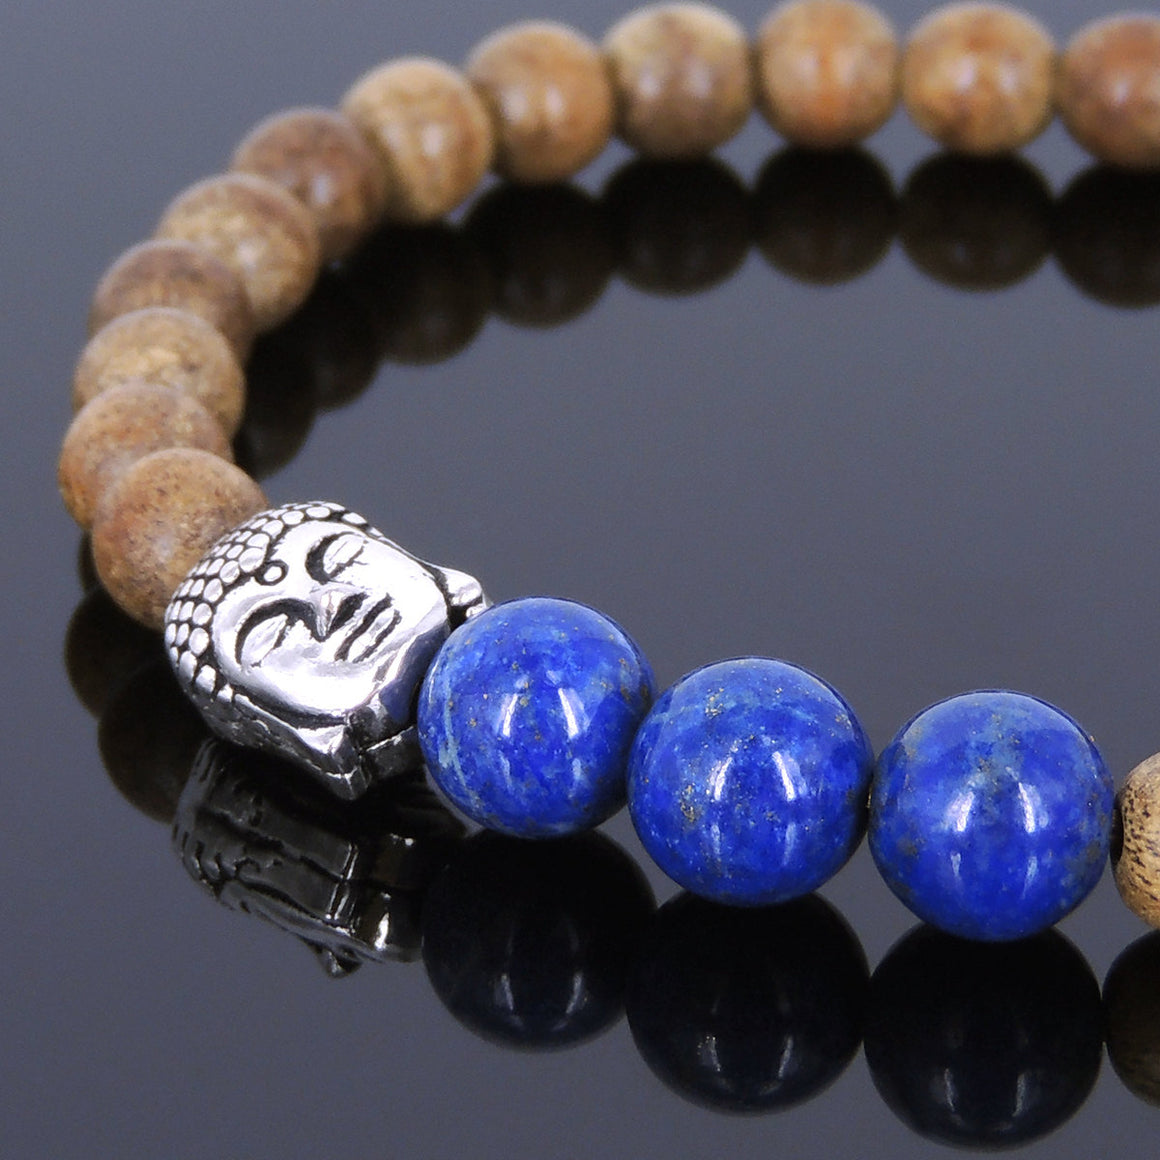 Agarwood & Lapis Lazuli Meditation Bracelet with S925 Sterling Silver Guanyin Buddha Bead - Handmade by Gem & Silver BR437